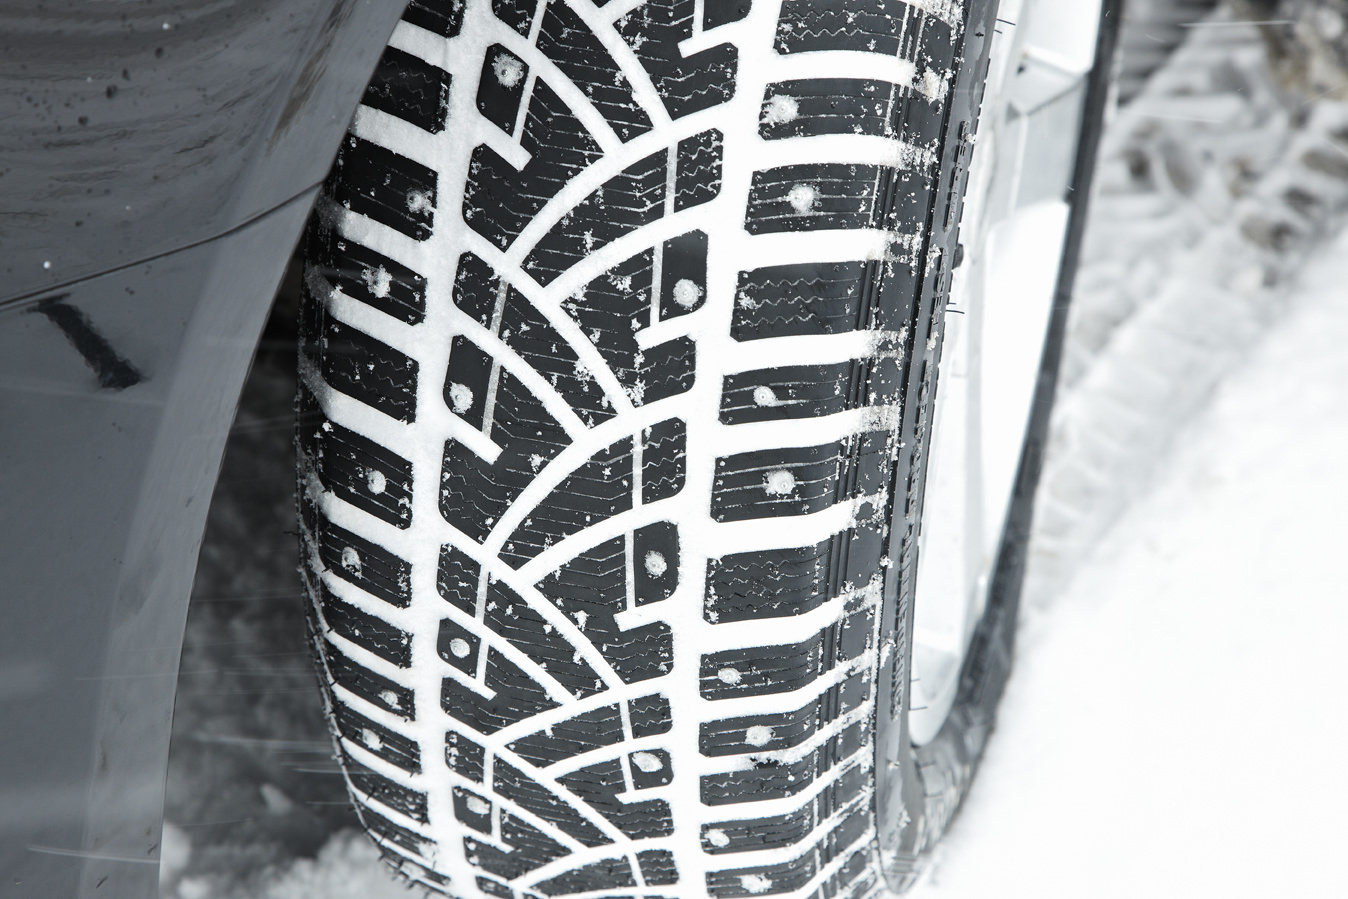 image of a tyre in snow conditions